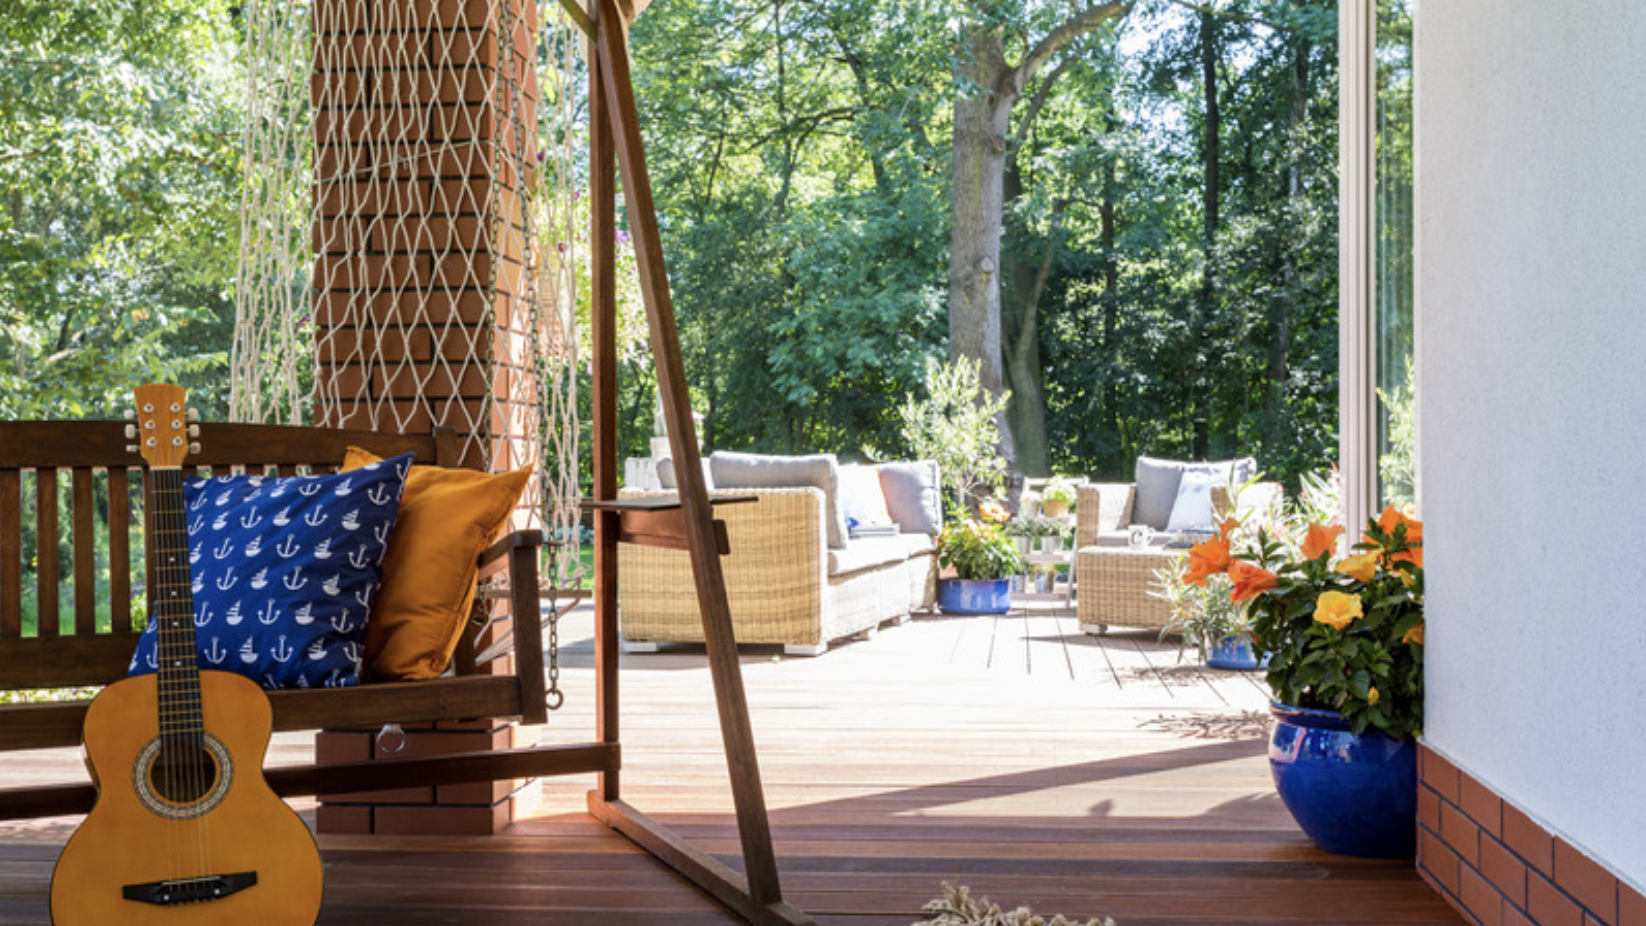 Simple Ways to Spruce Up the Outside of Your Home This Summer